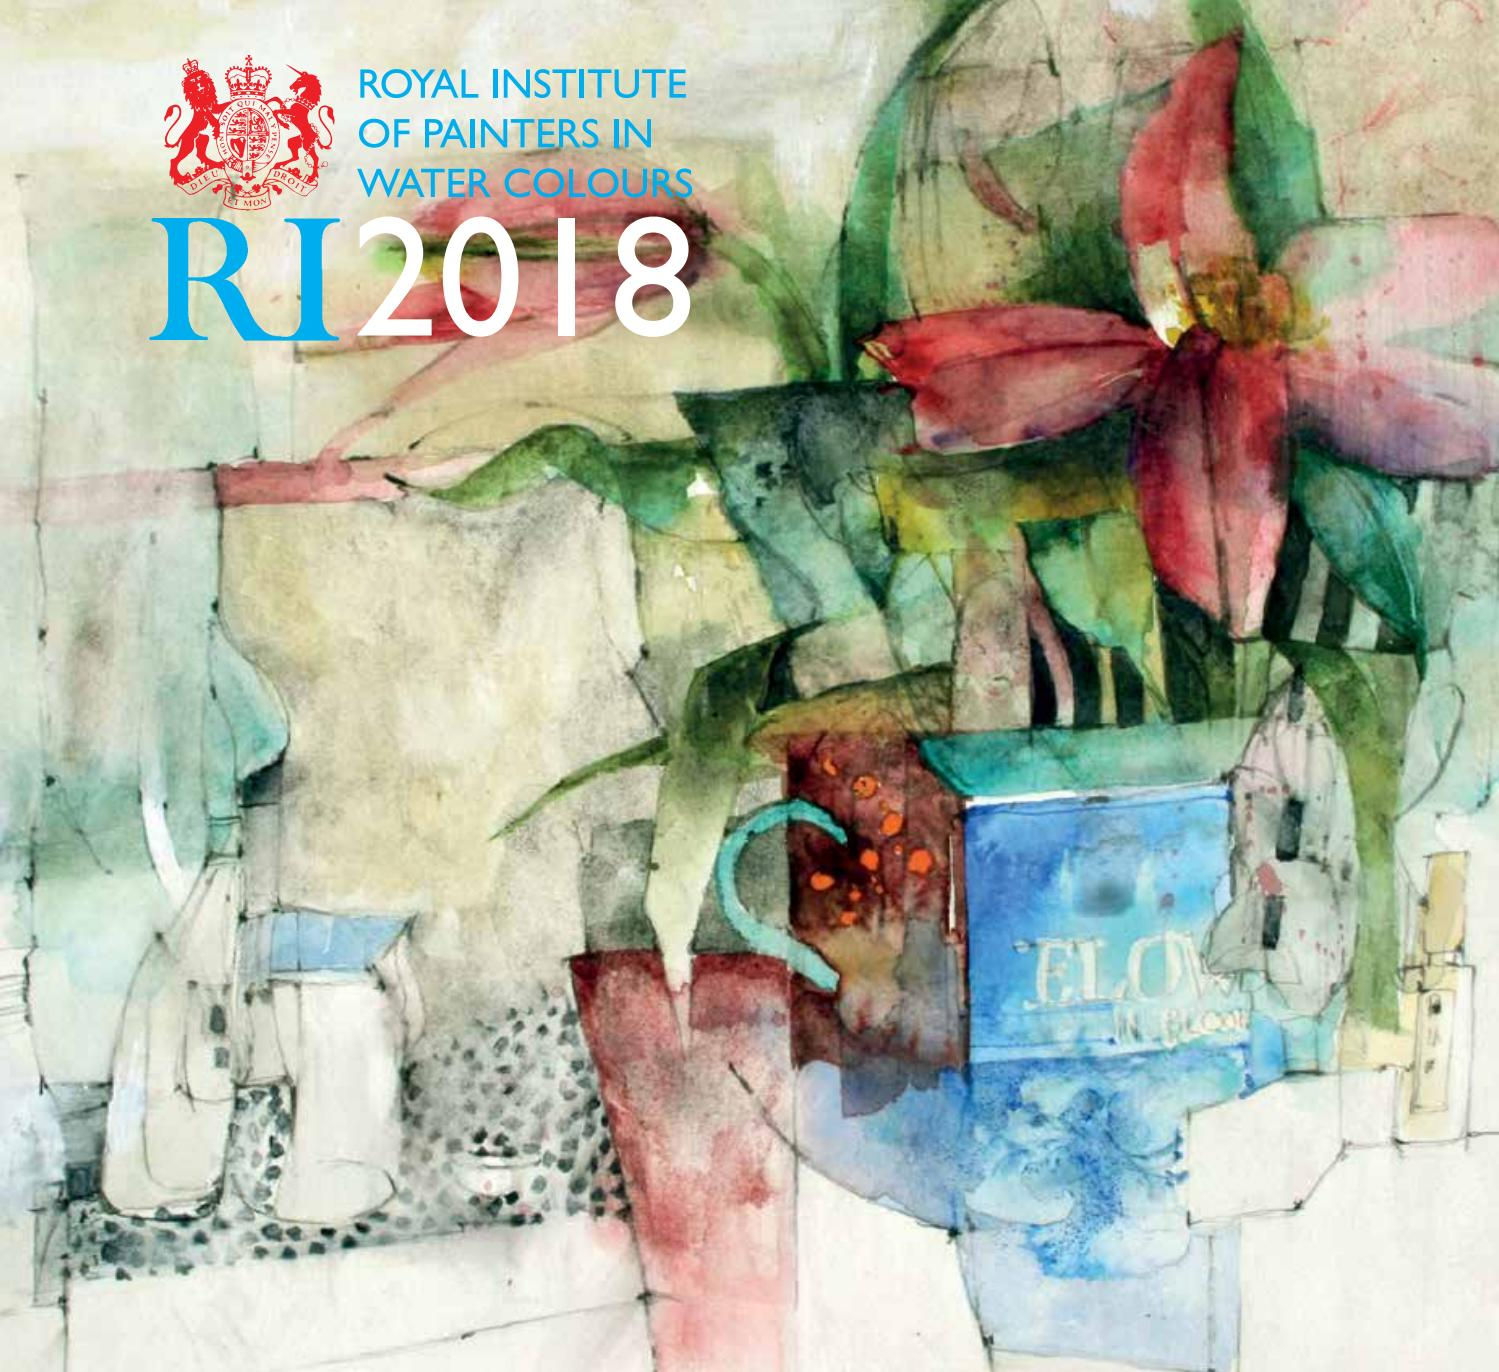 Royal Institute of Painters in Water Colours 2018 by Mall Galleries ...